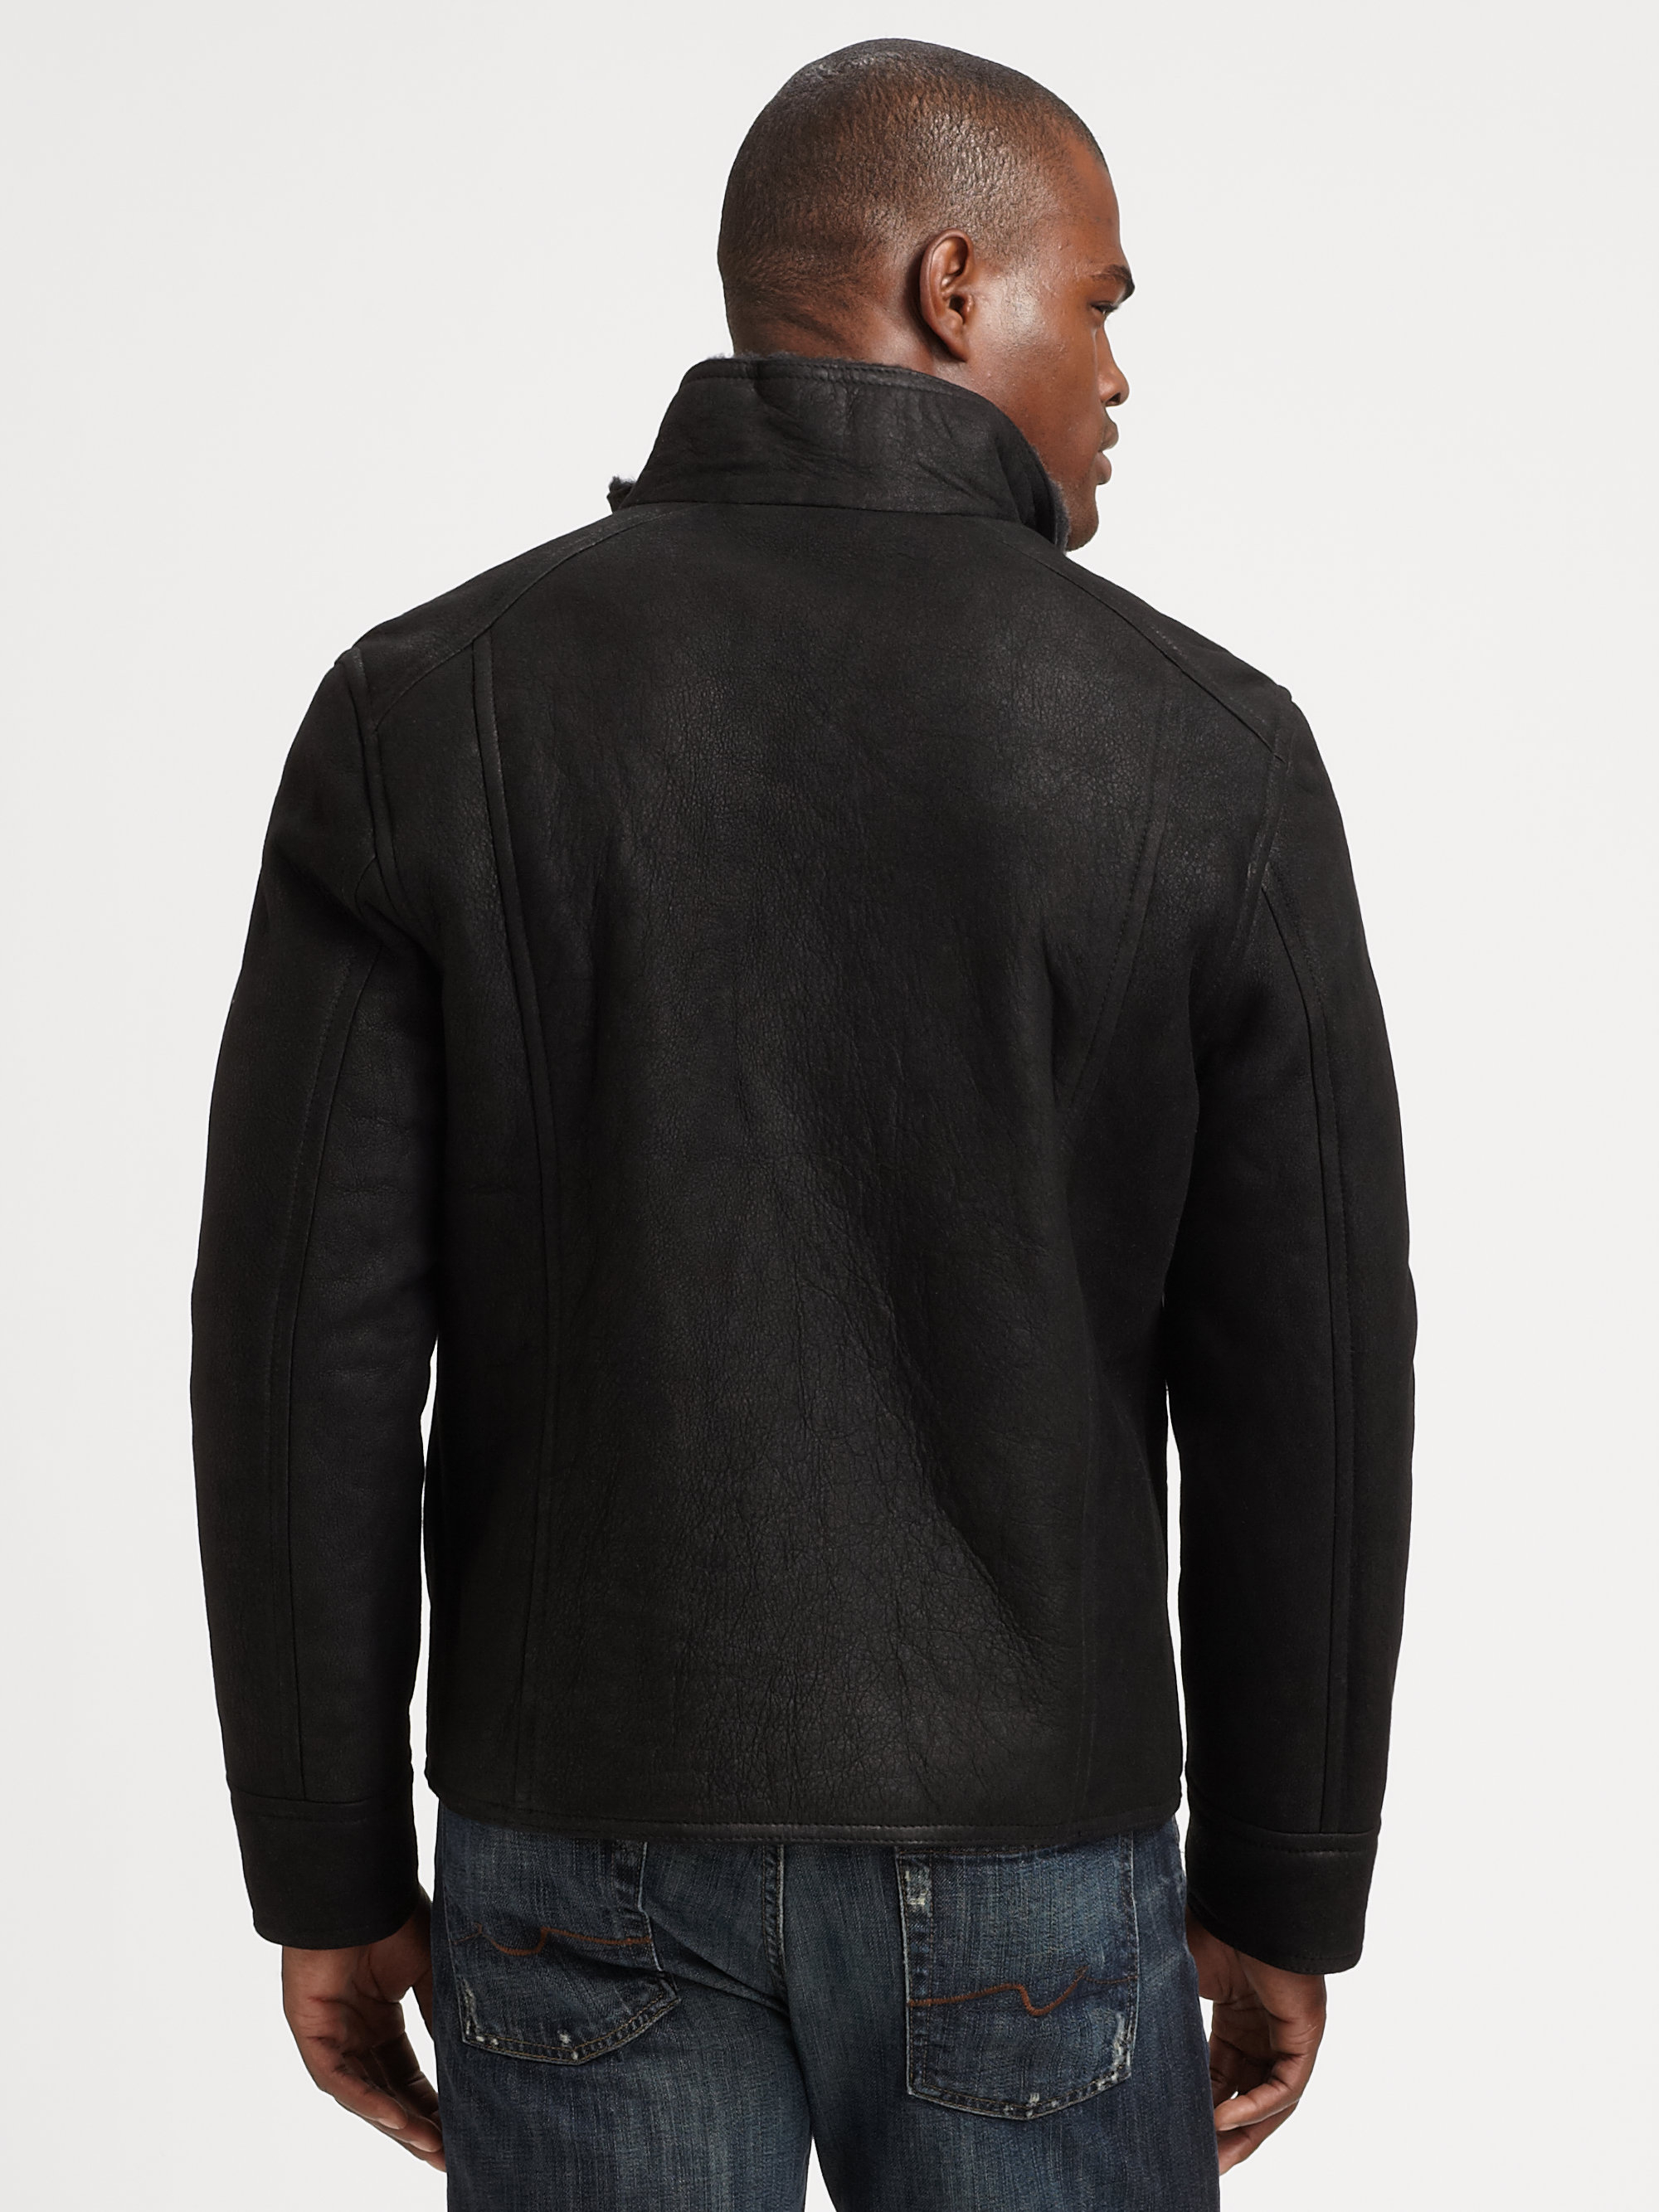 Suede Jacket Outfits For Men 20 Ways To Wear A Suede Jacket: Andrew Marc Vintage Oiled Suede Jacket In Black For Men